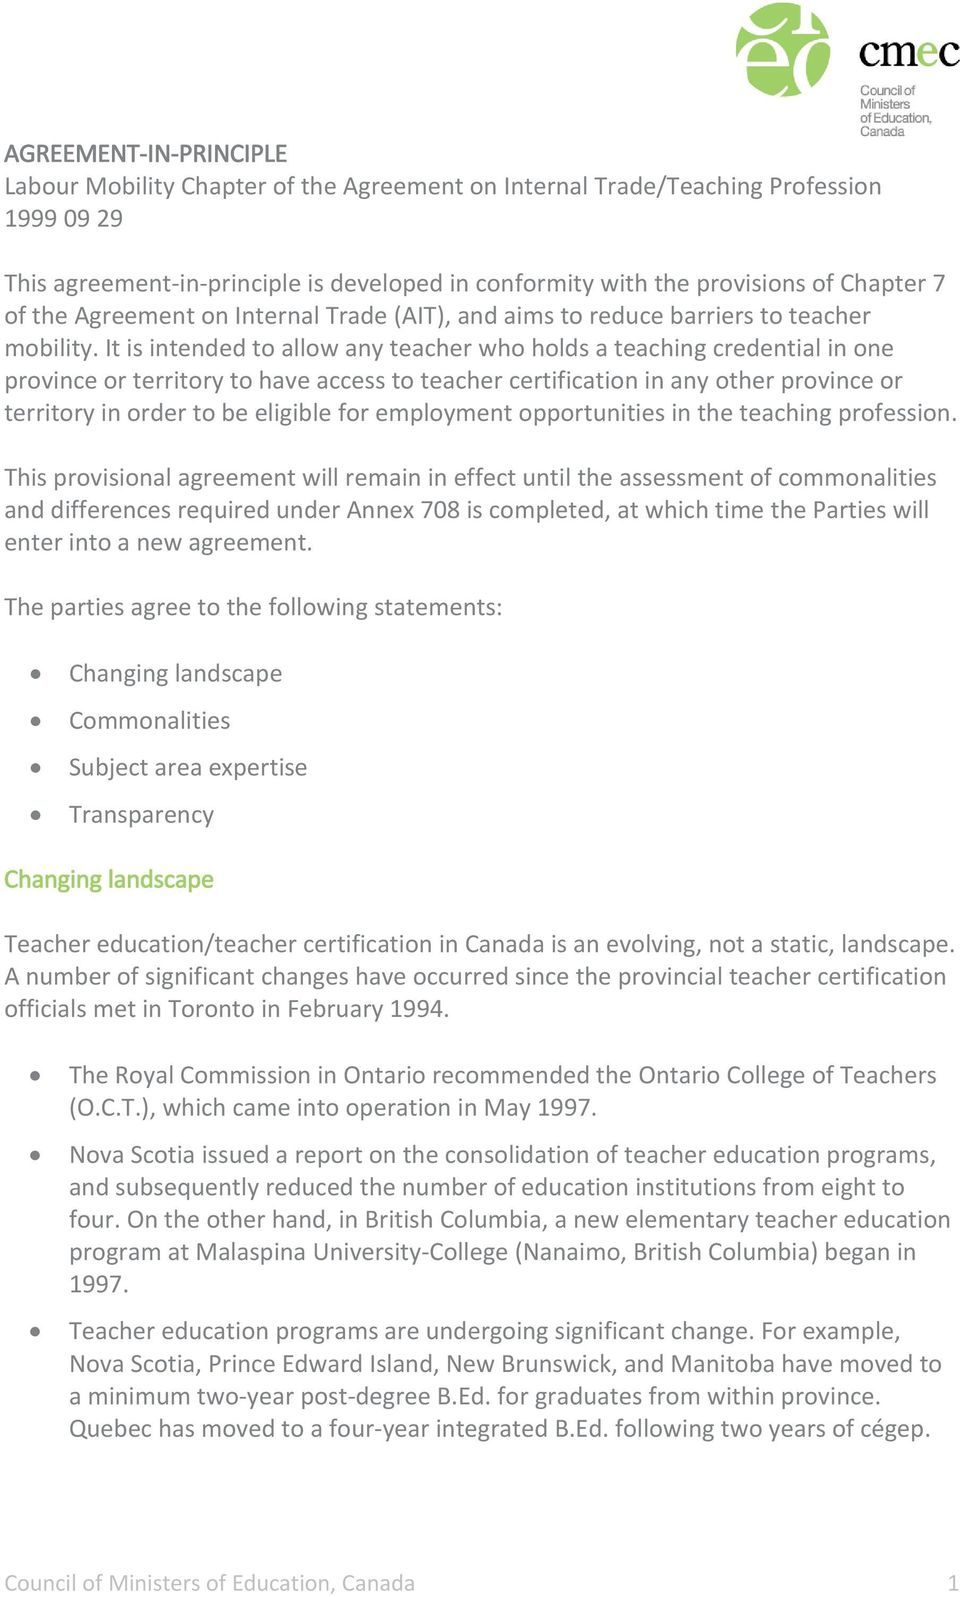 It is intended to allow any teacher who holds a teaching credential in one province or territory to have access to teacher certification in any other province or territory in order to be eligible for